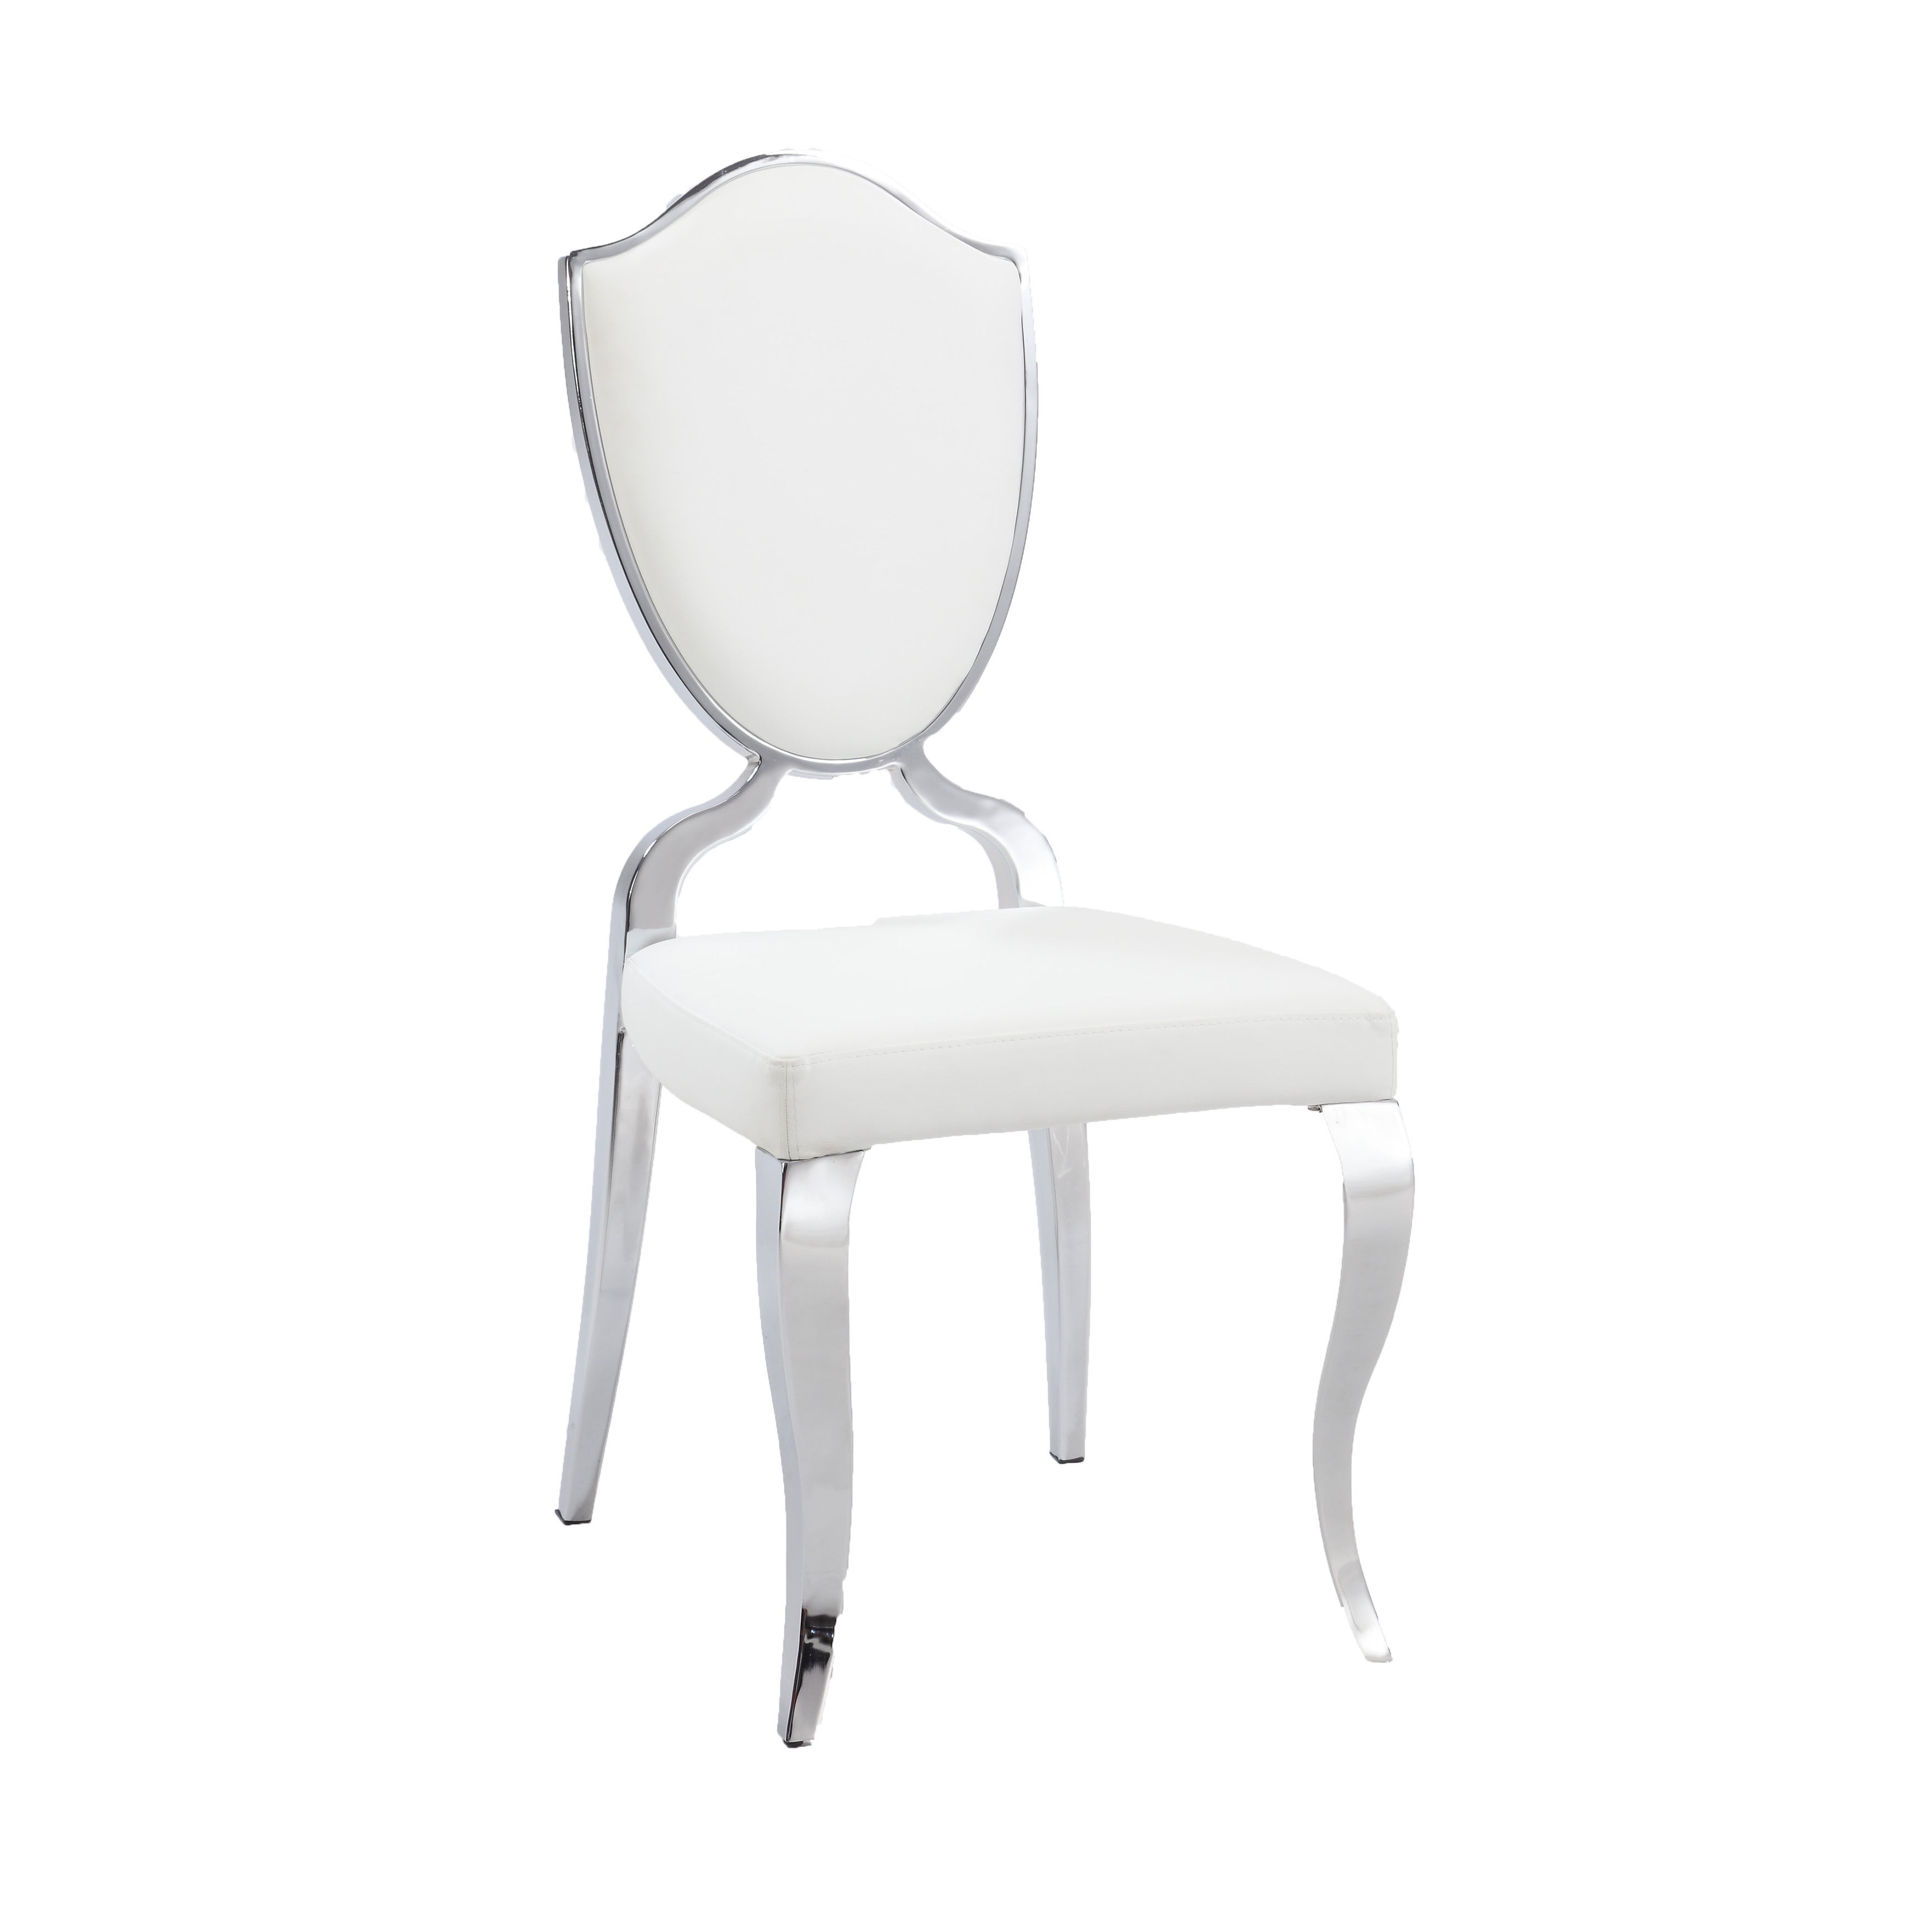 Sensational Somette Lexie White Shield Back Dining Chair Set Of 2 Gmtry Best Dining Table And Chair Ideas Images Gmtryco